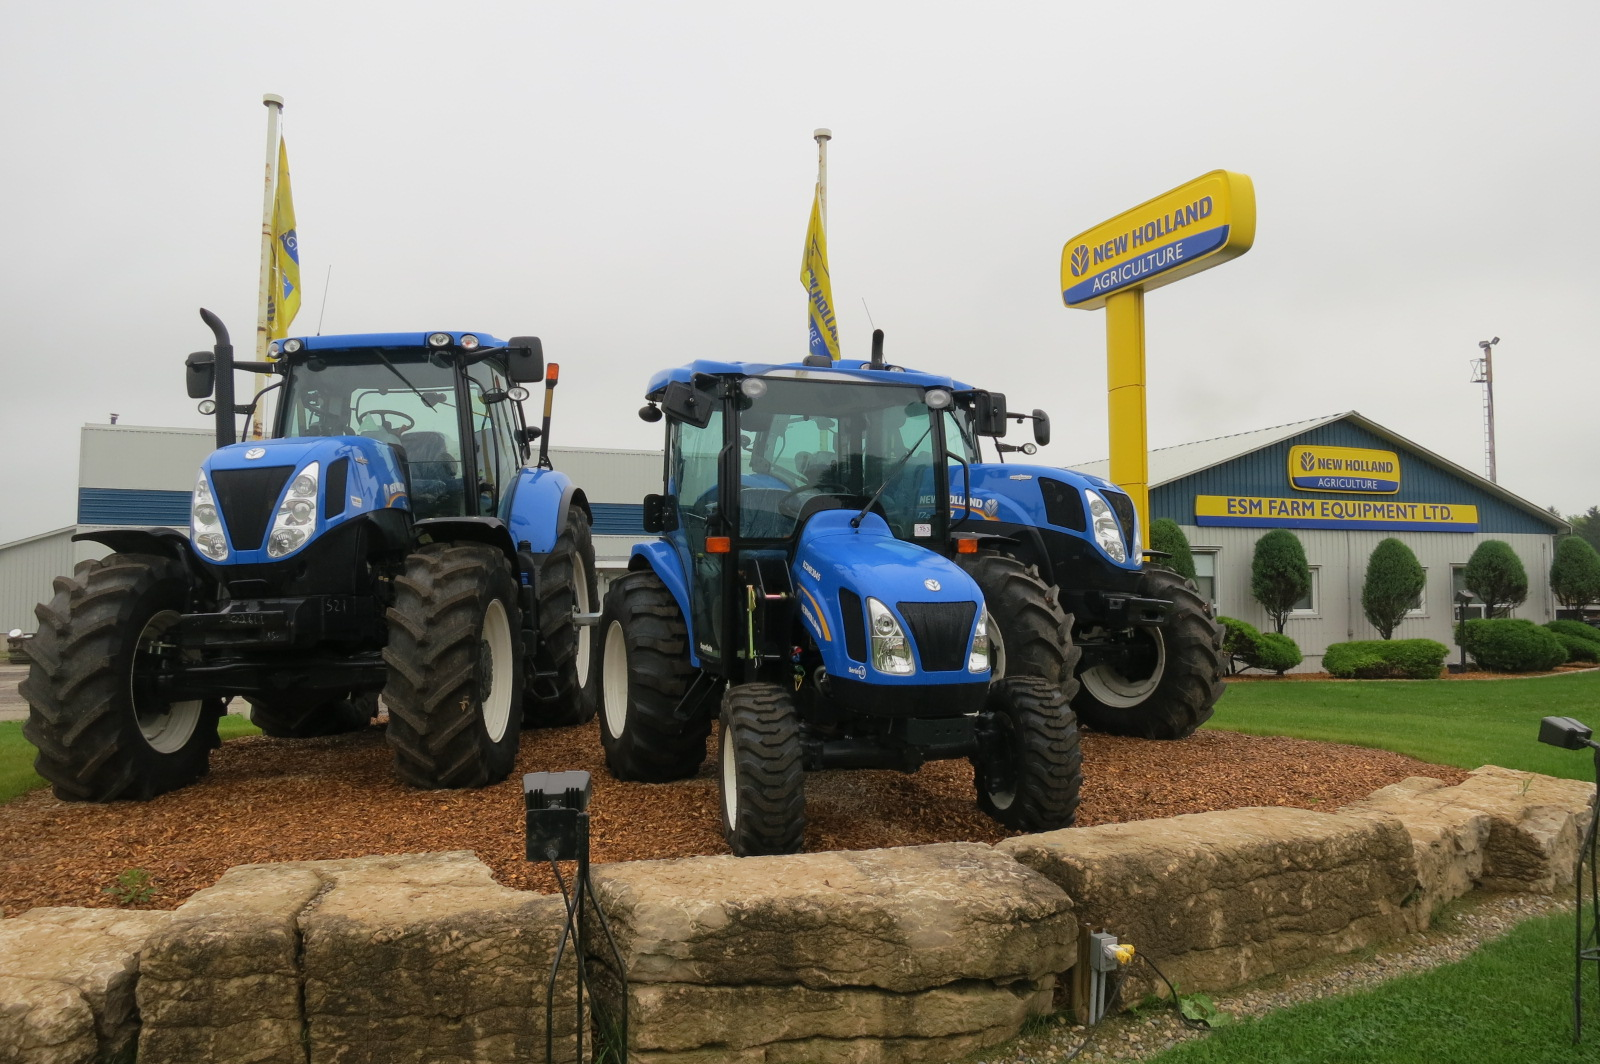 Esm Farm Equipment | NEWHOLLANDAG | 7293 Line 86, Wallenstein, ON N0B2S0, Canada